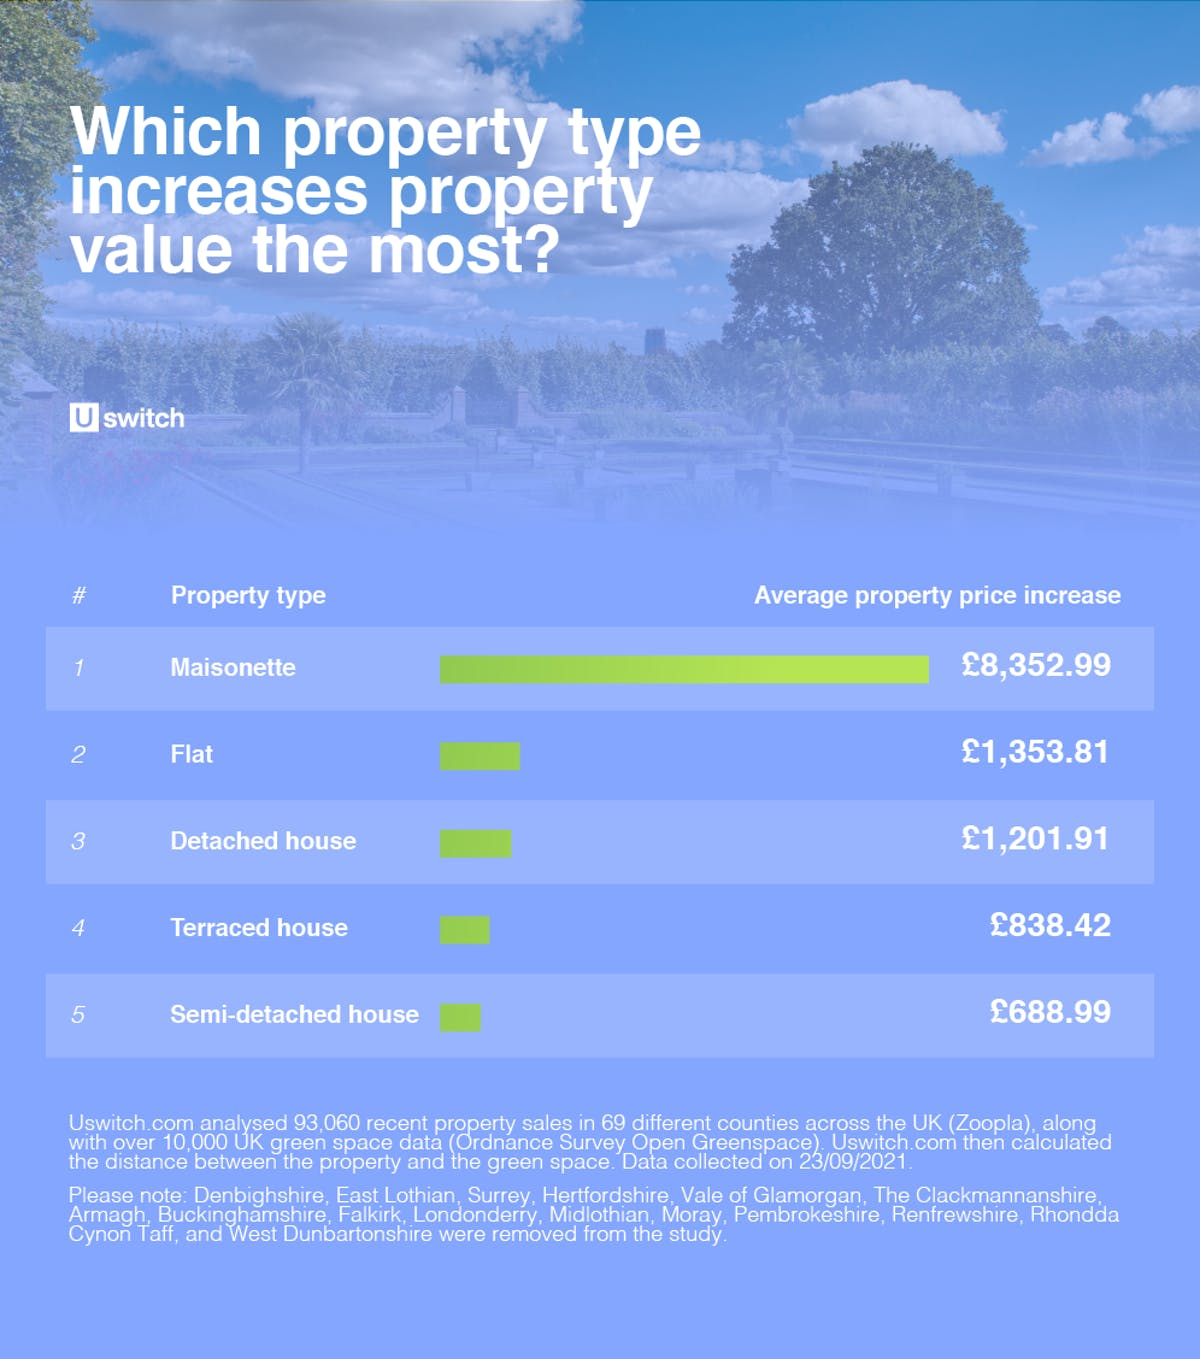 Which property type increases property value the most?